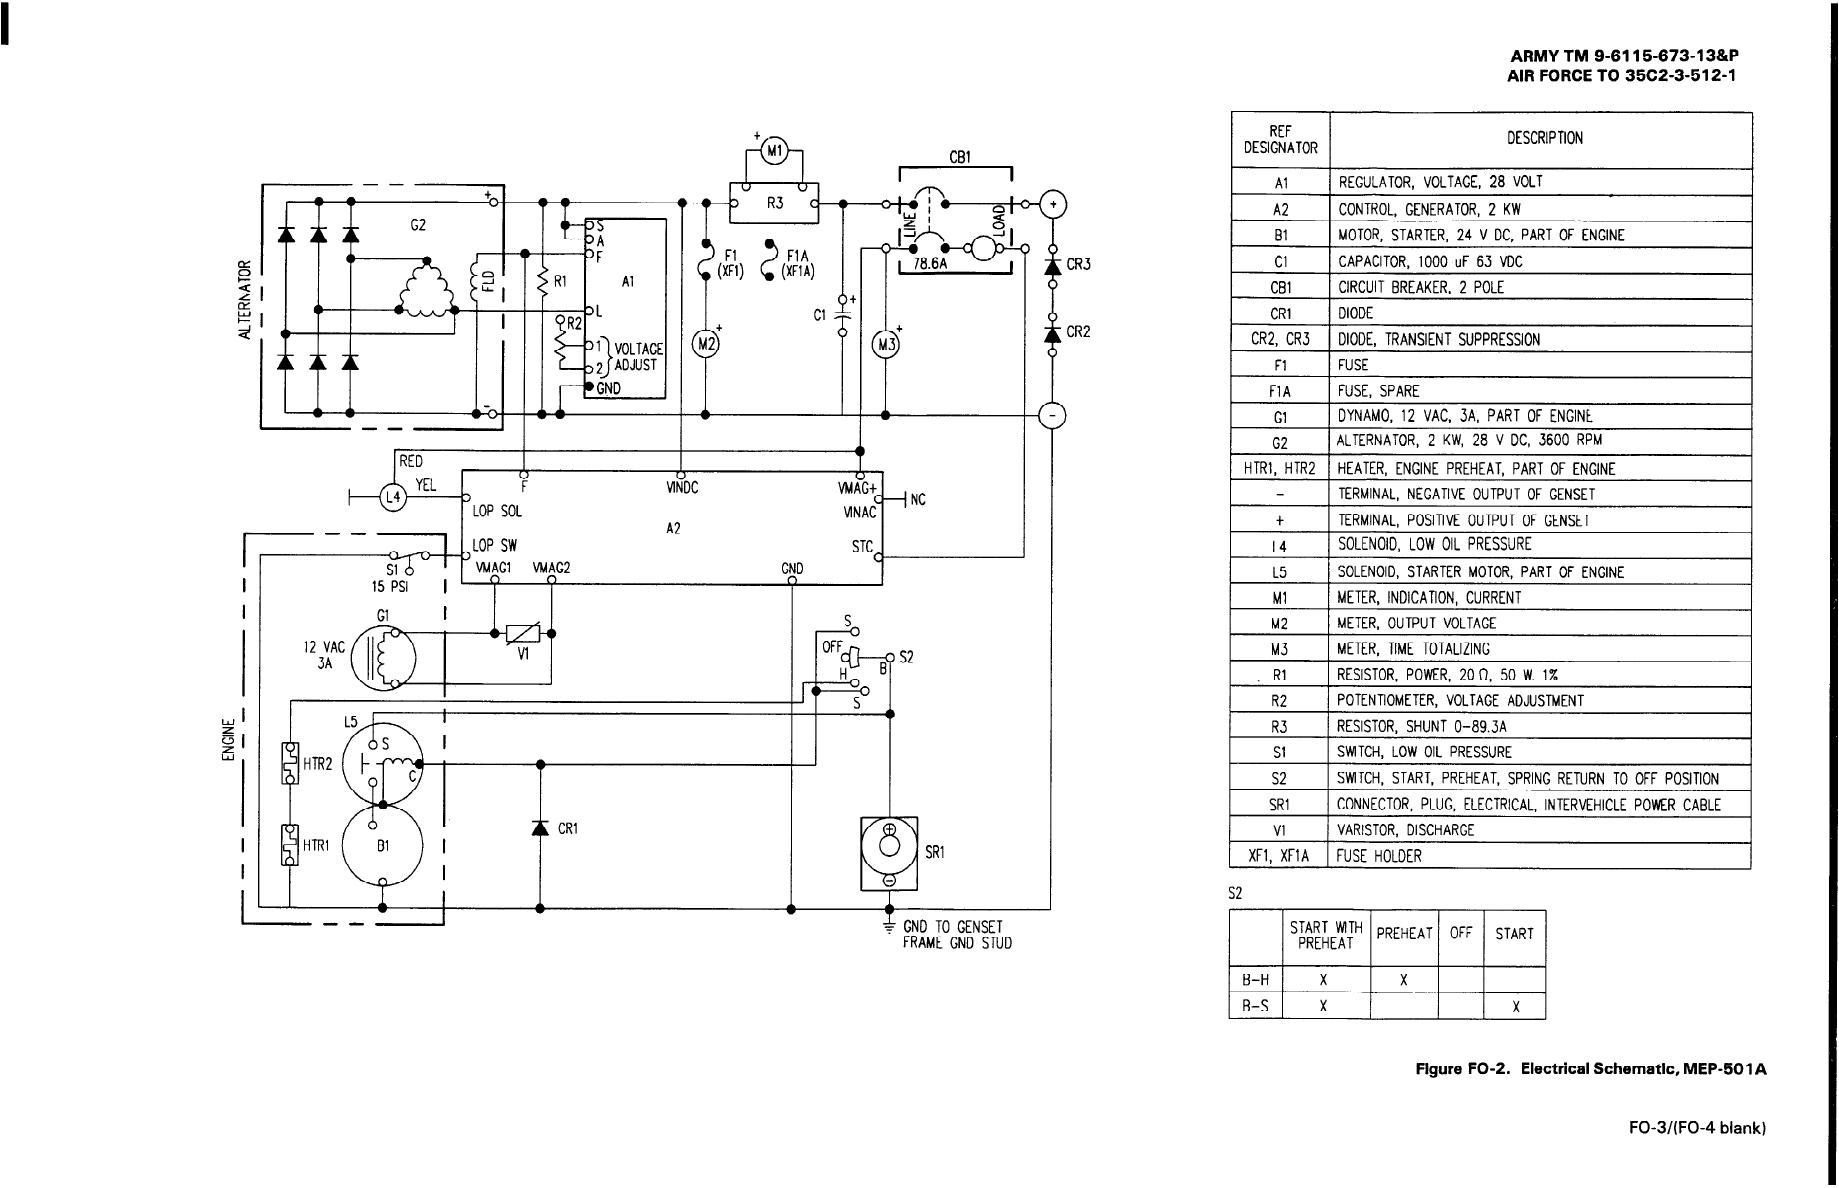 Figure FO-2. Electrical Schematic, MEP-501A